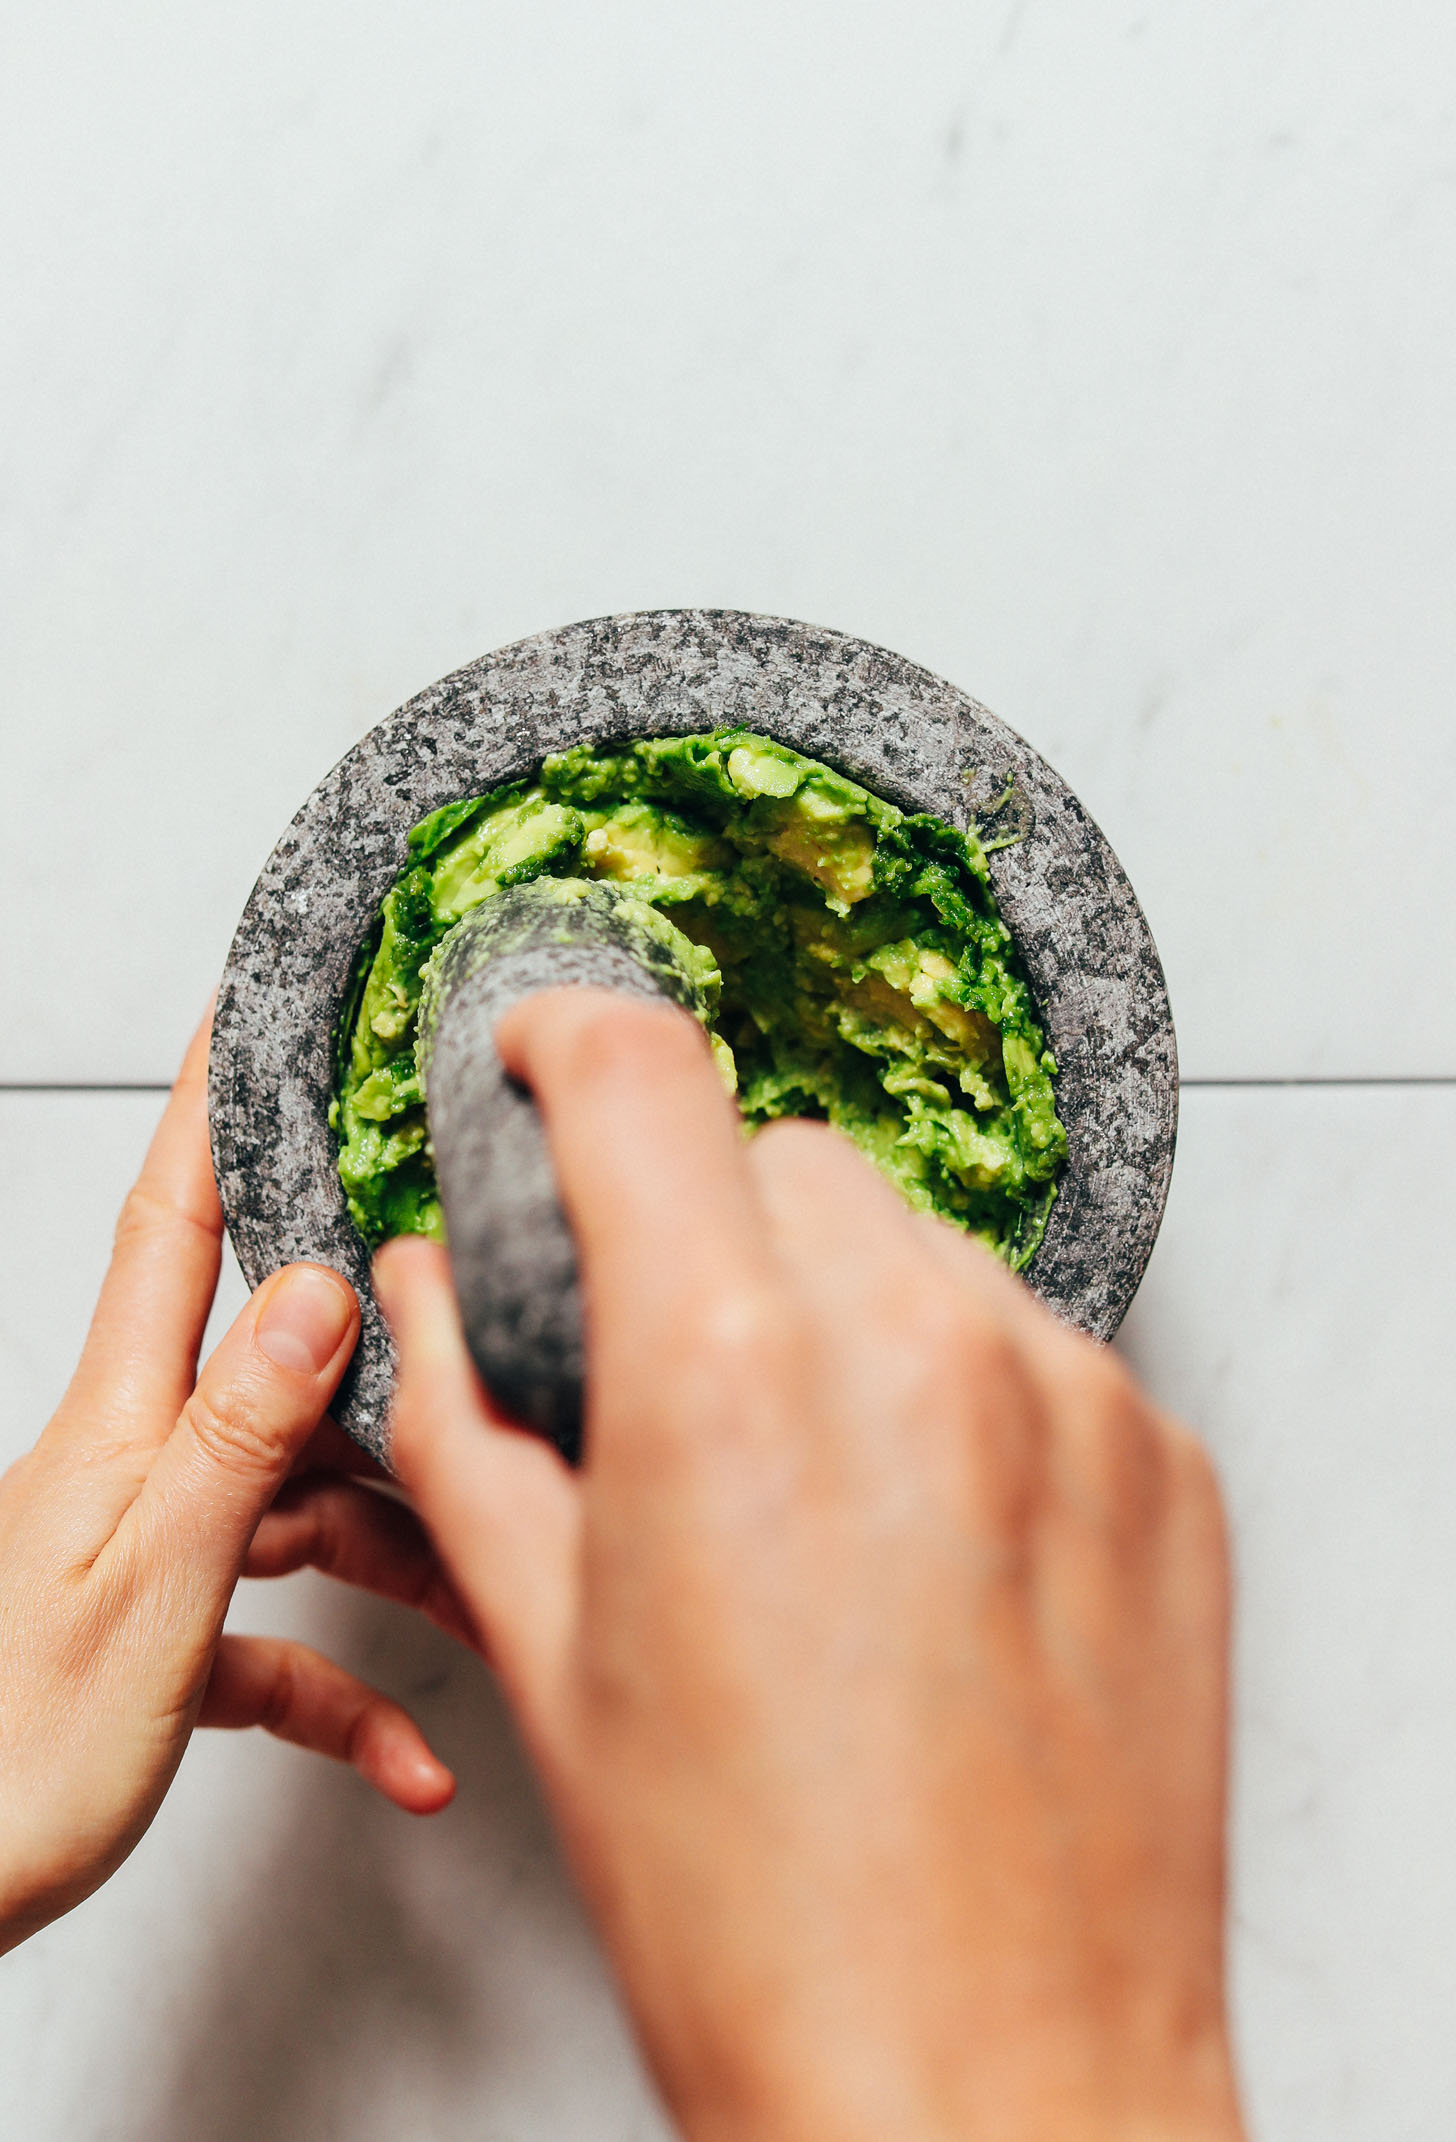 Using a mortar and pestle to smash avocado for making guacamole